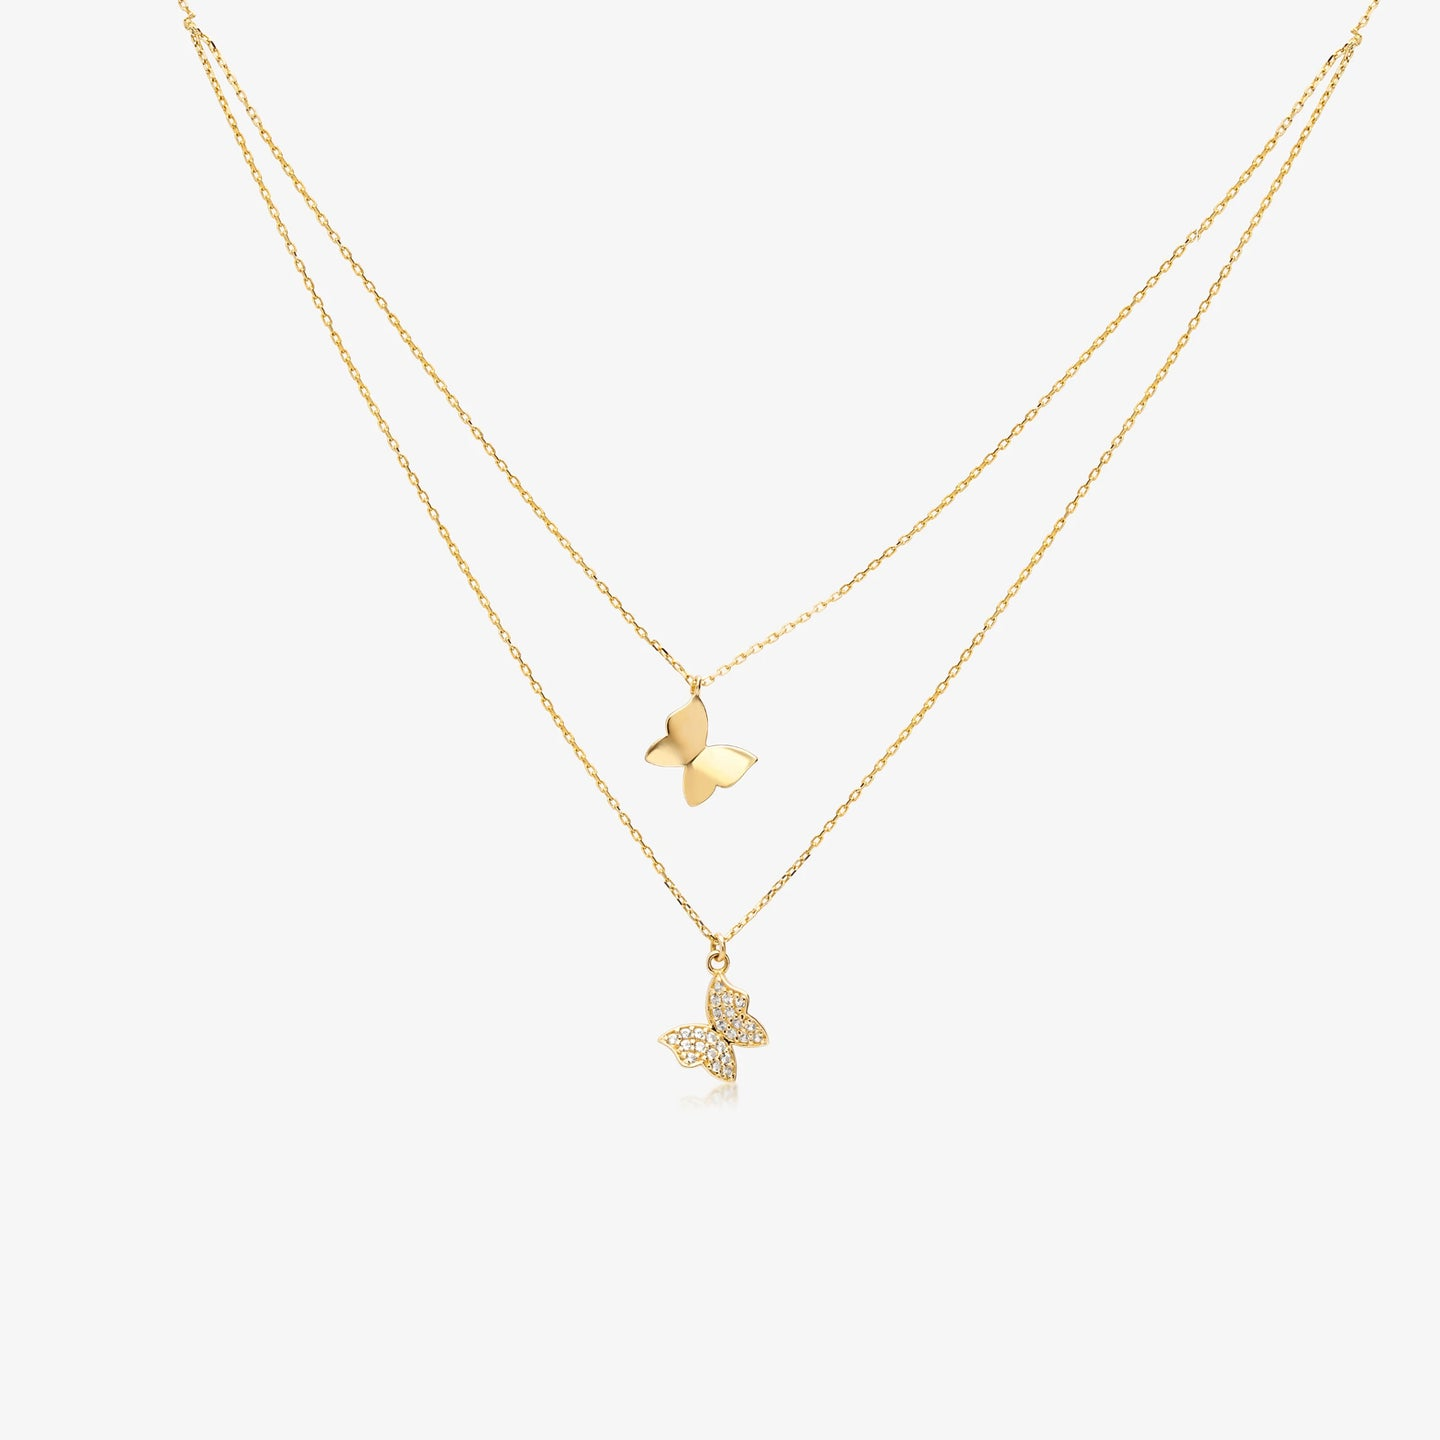 Lara - Layering Butterfly Necklace 14K Gold with Adjustable Chain 16